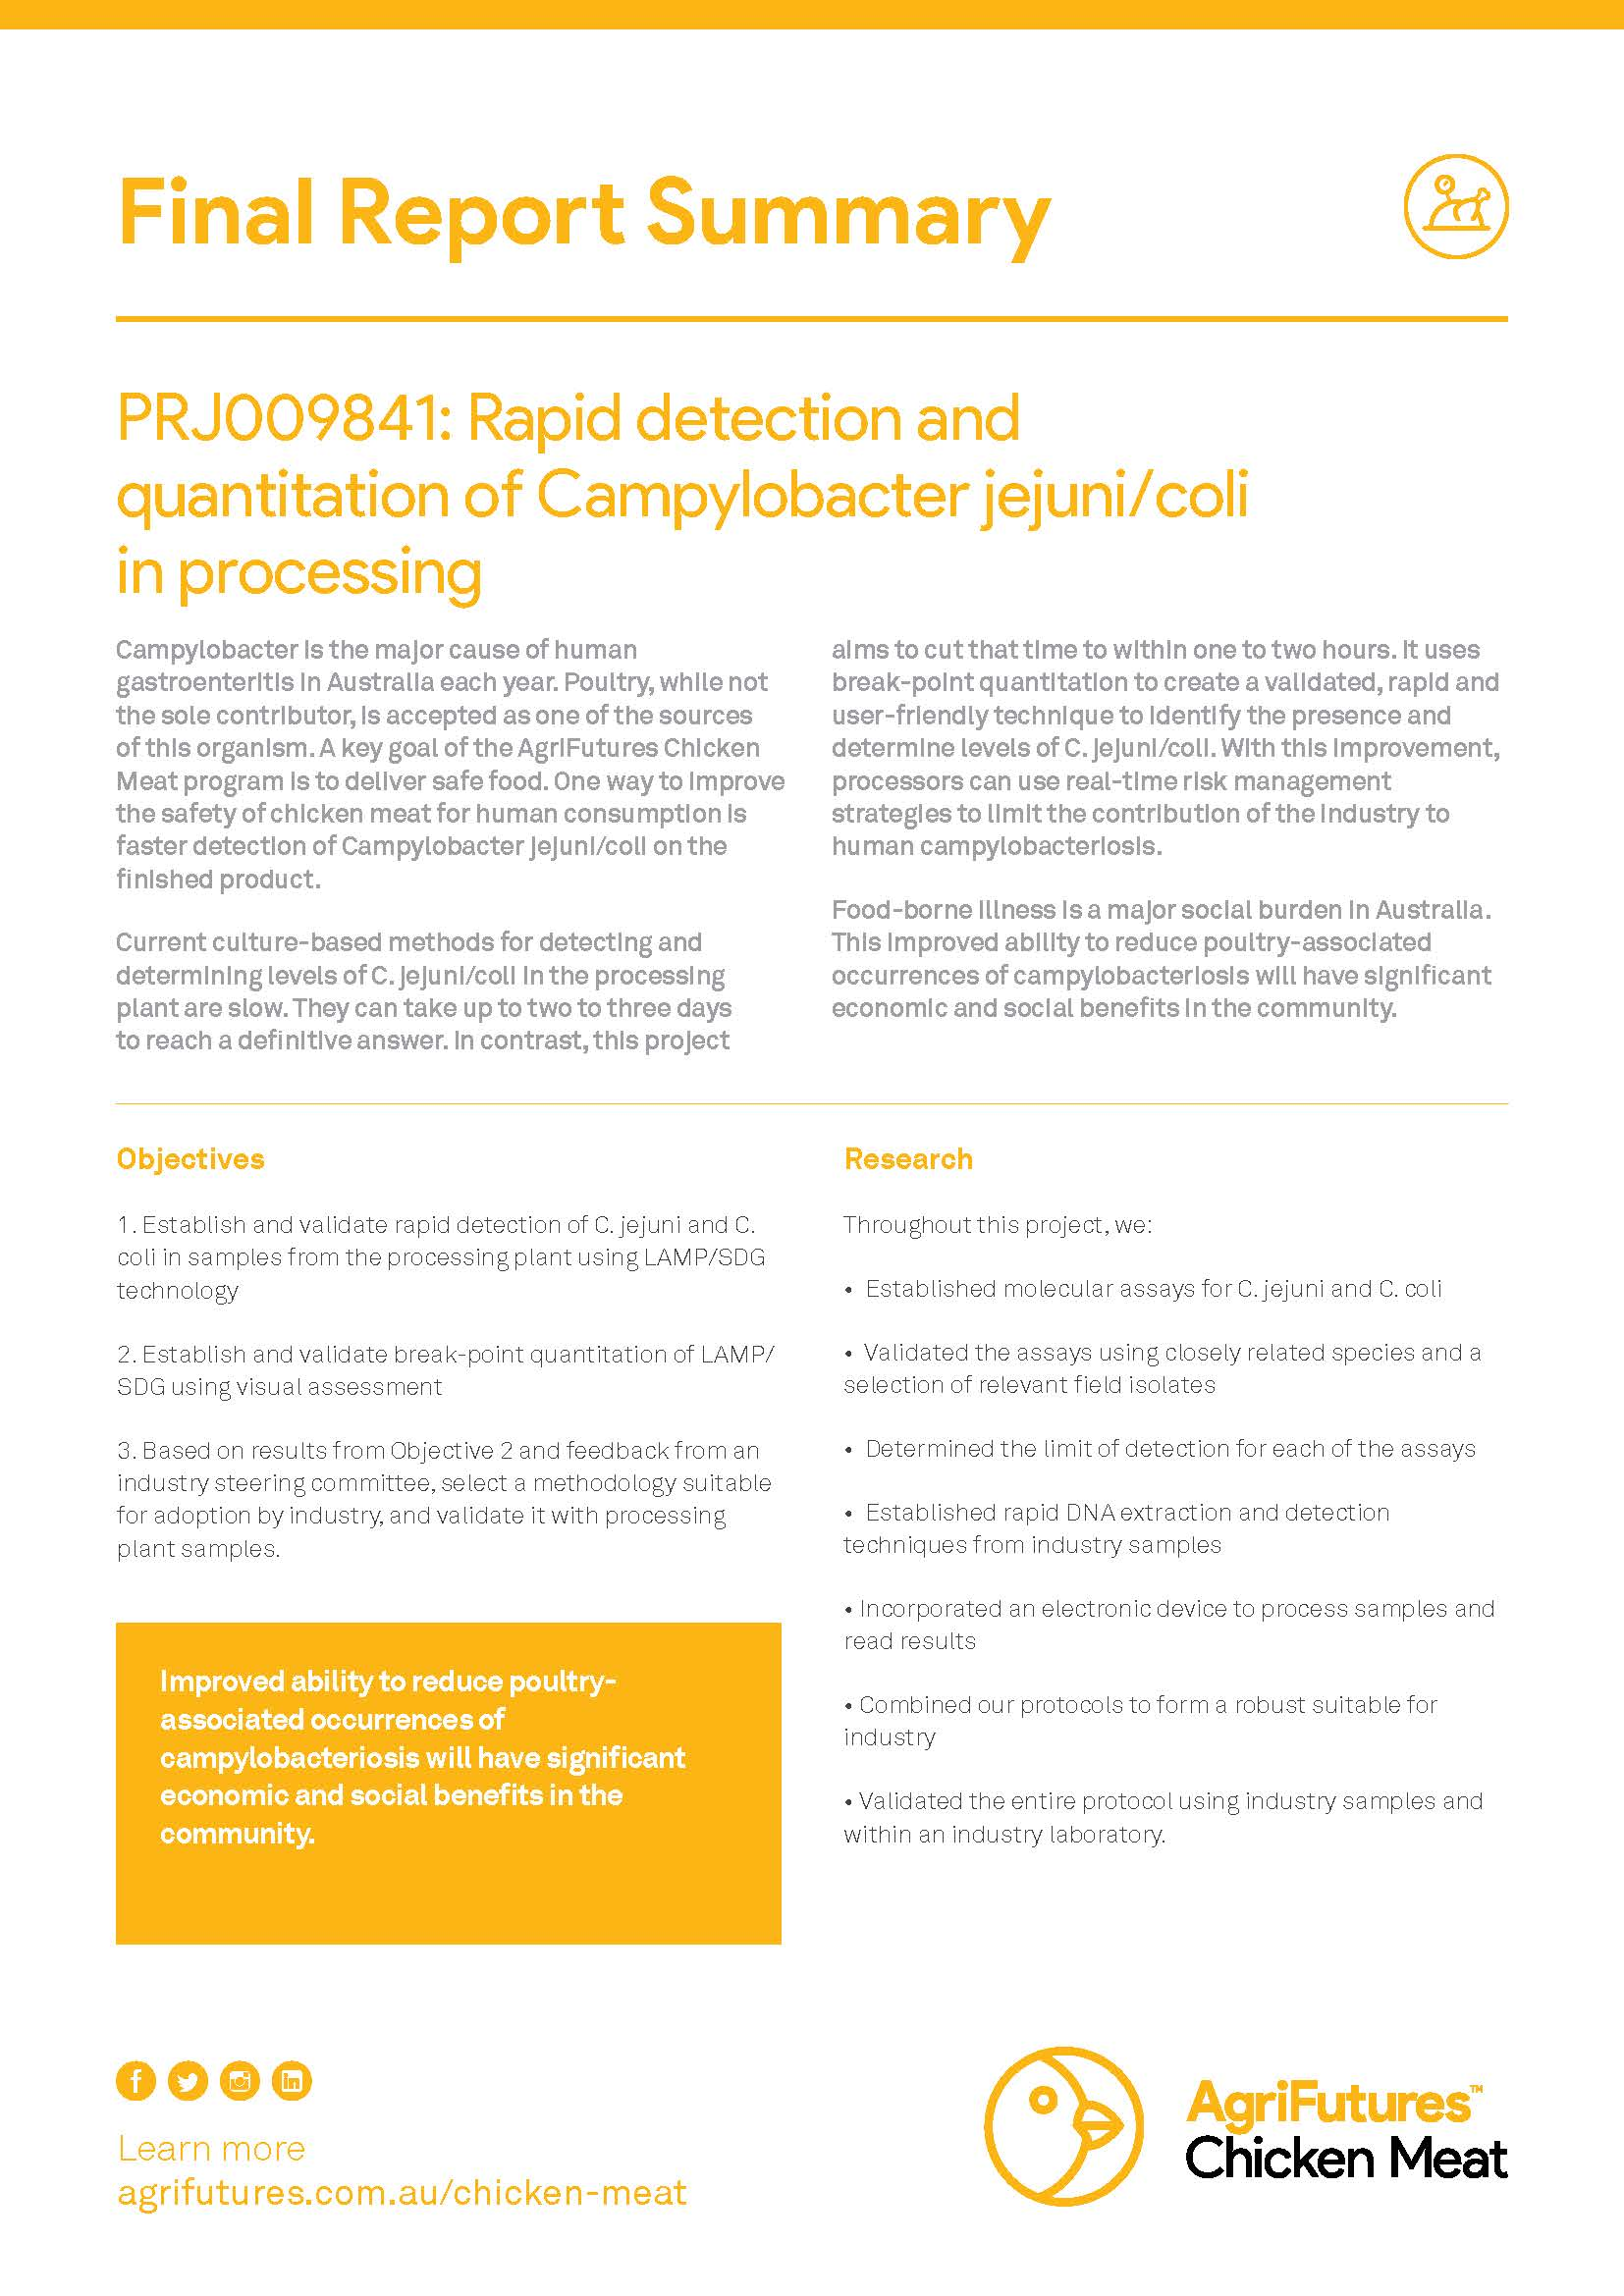 Final report summary: Rapid detection and quantitation of Campylobacter jejuni/coli in processing - image